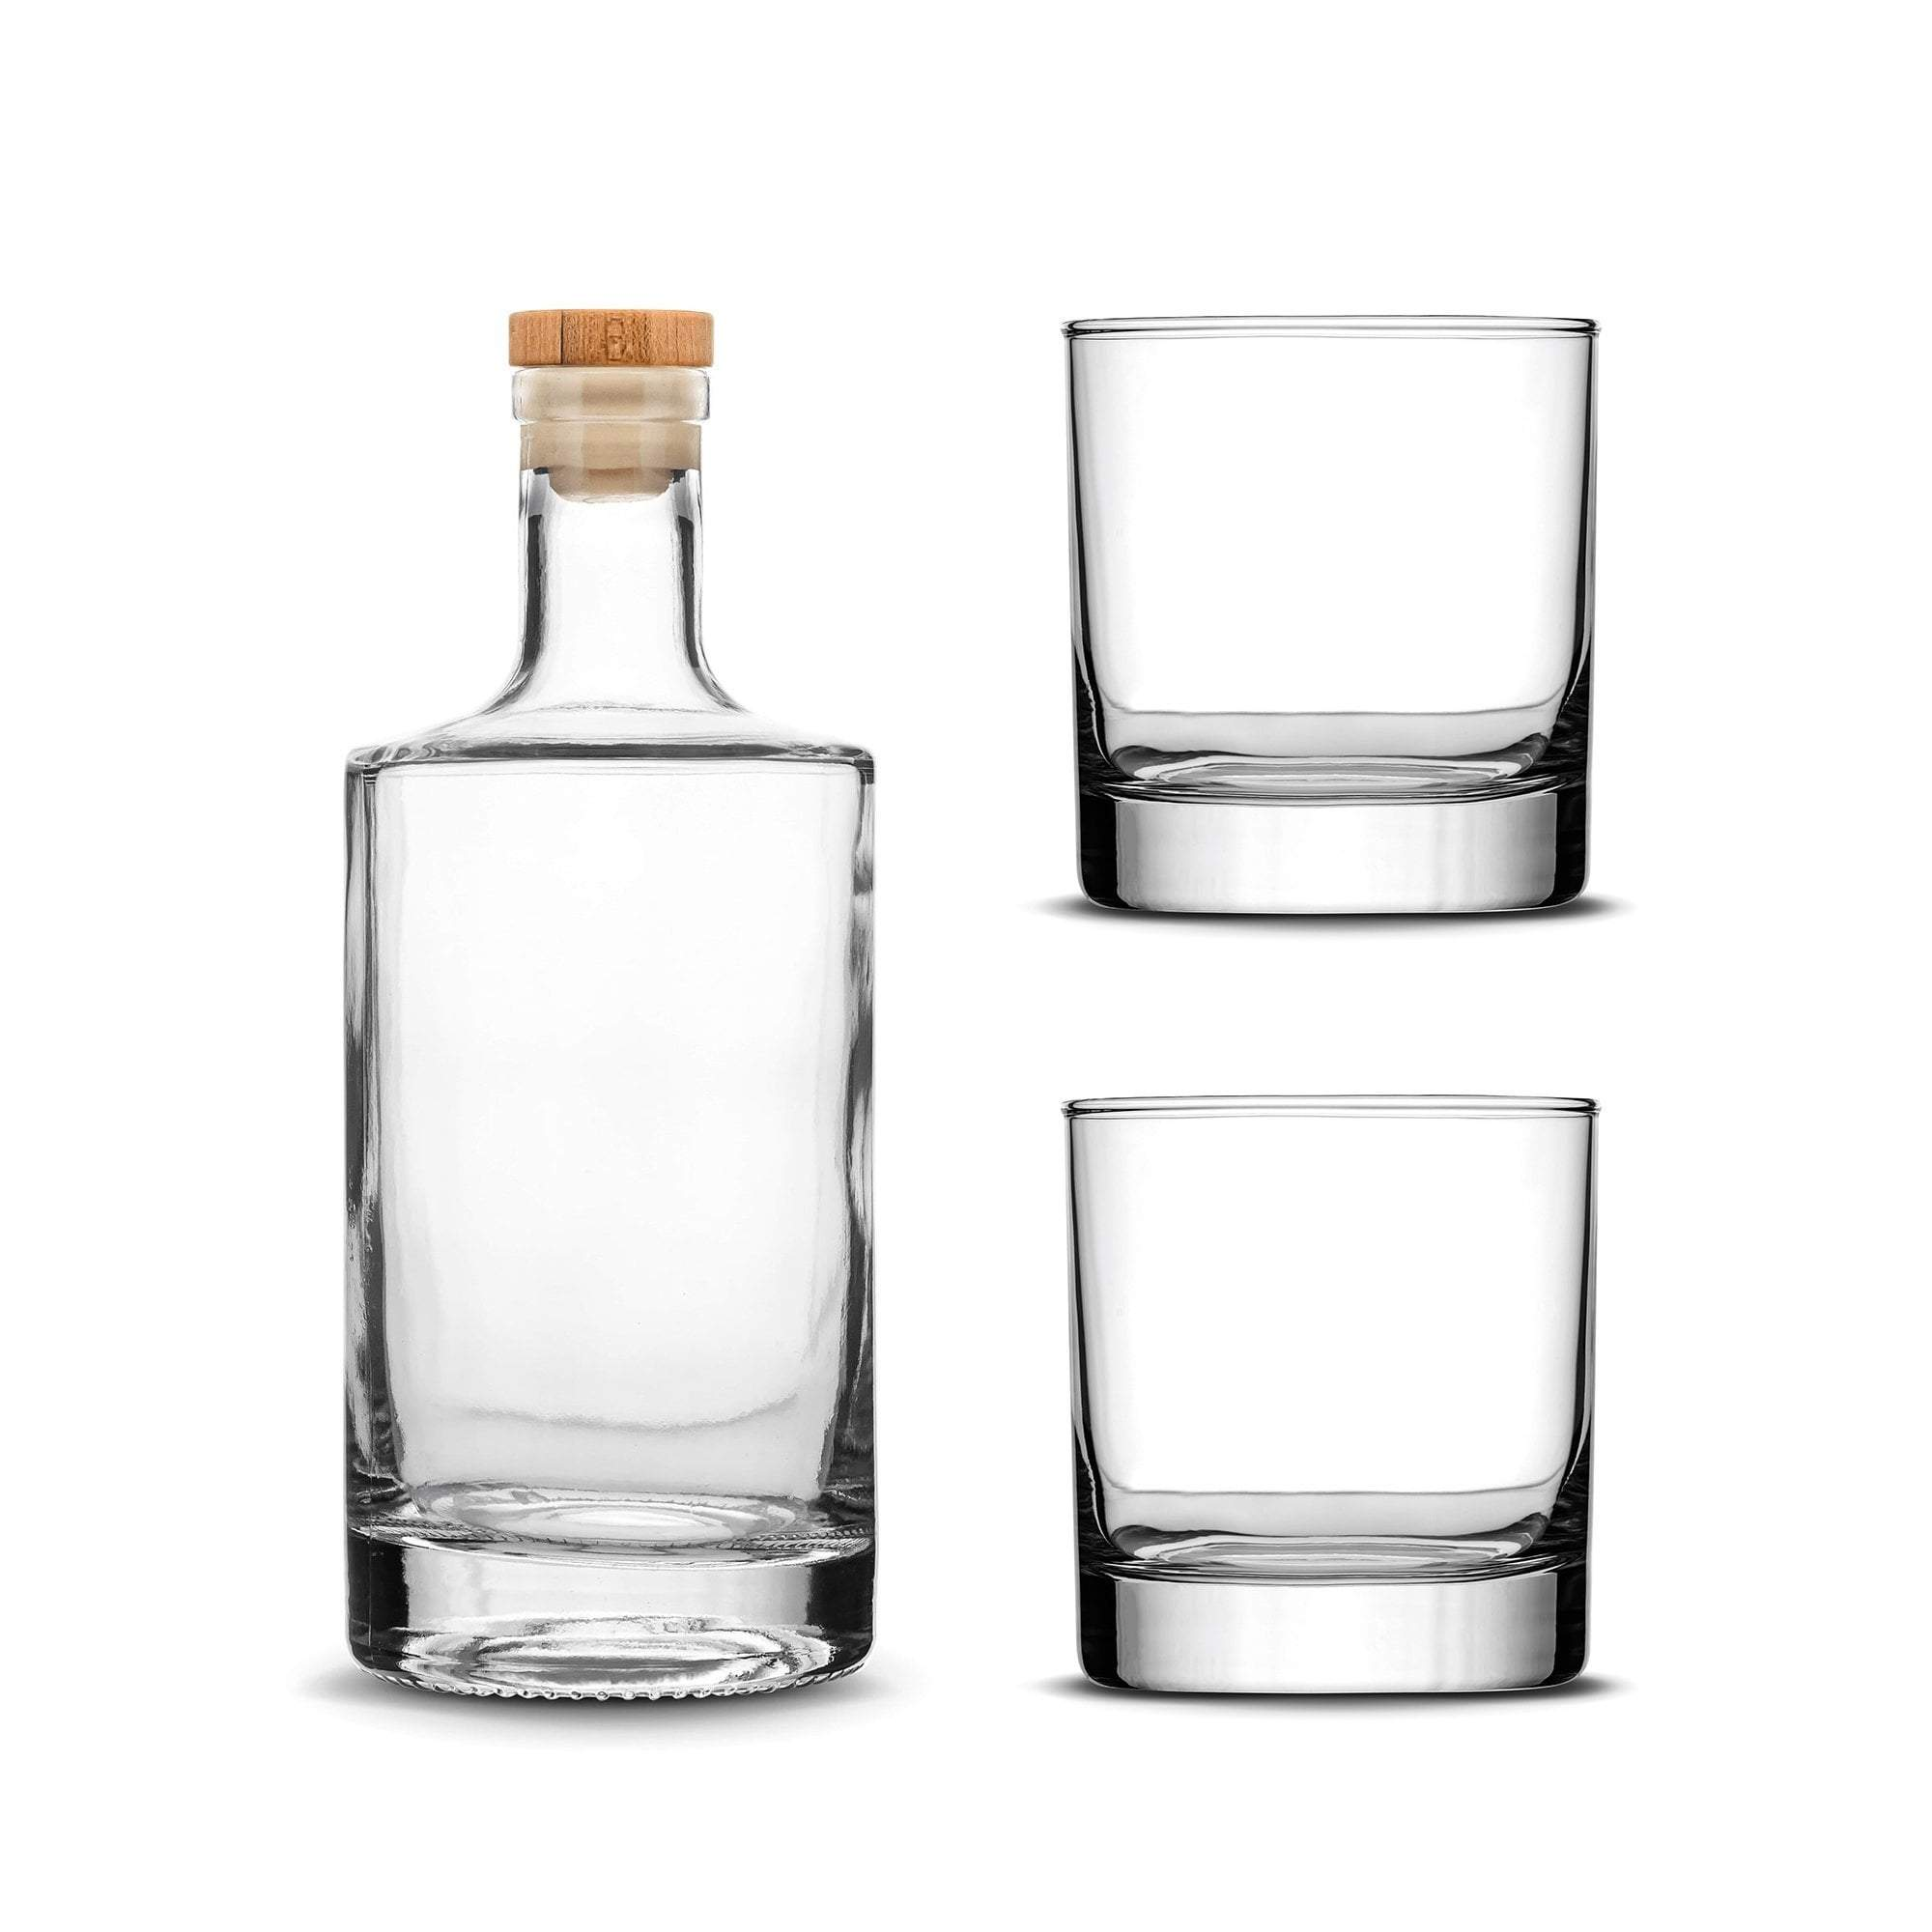 Custom Etched Refillable Jersey Bottle with Set of 2 Custom Whiskey Glasses Integrity Bottles